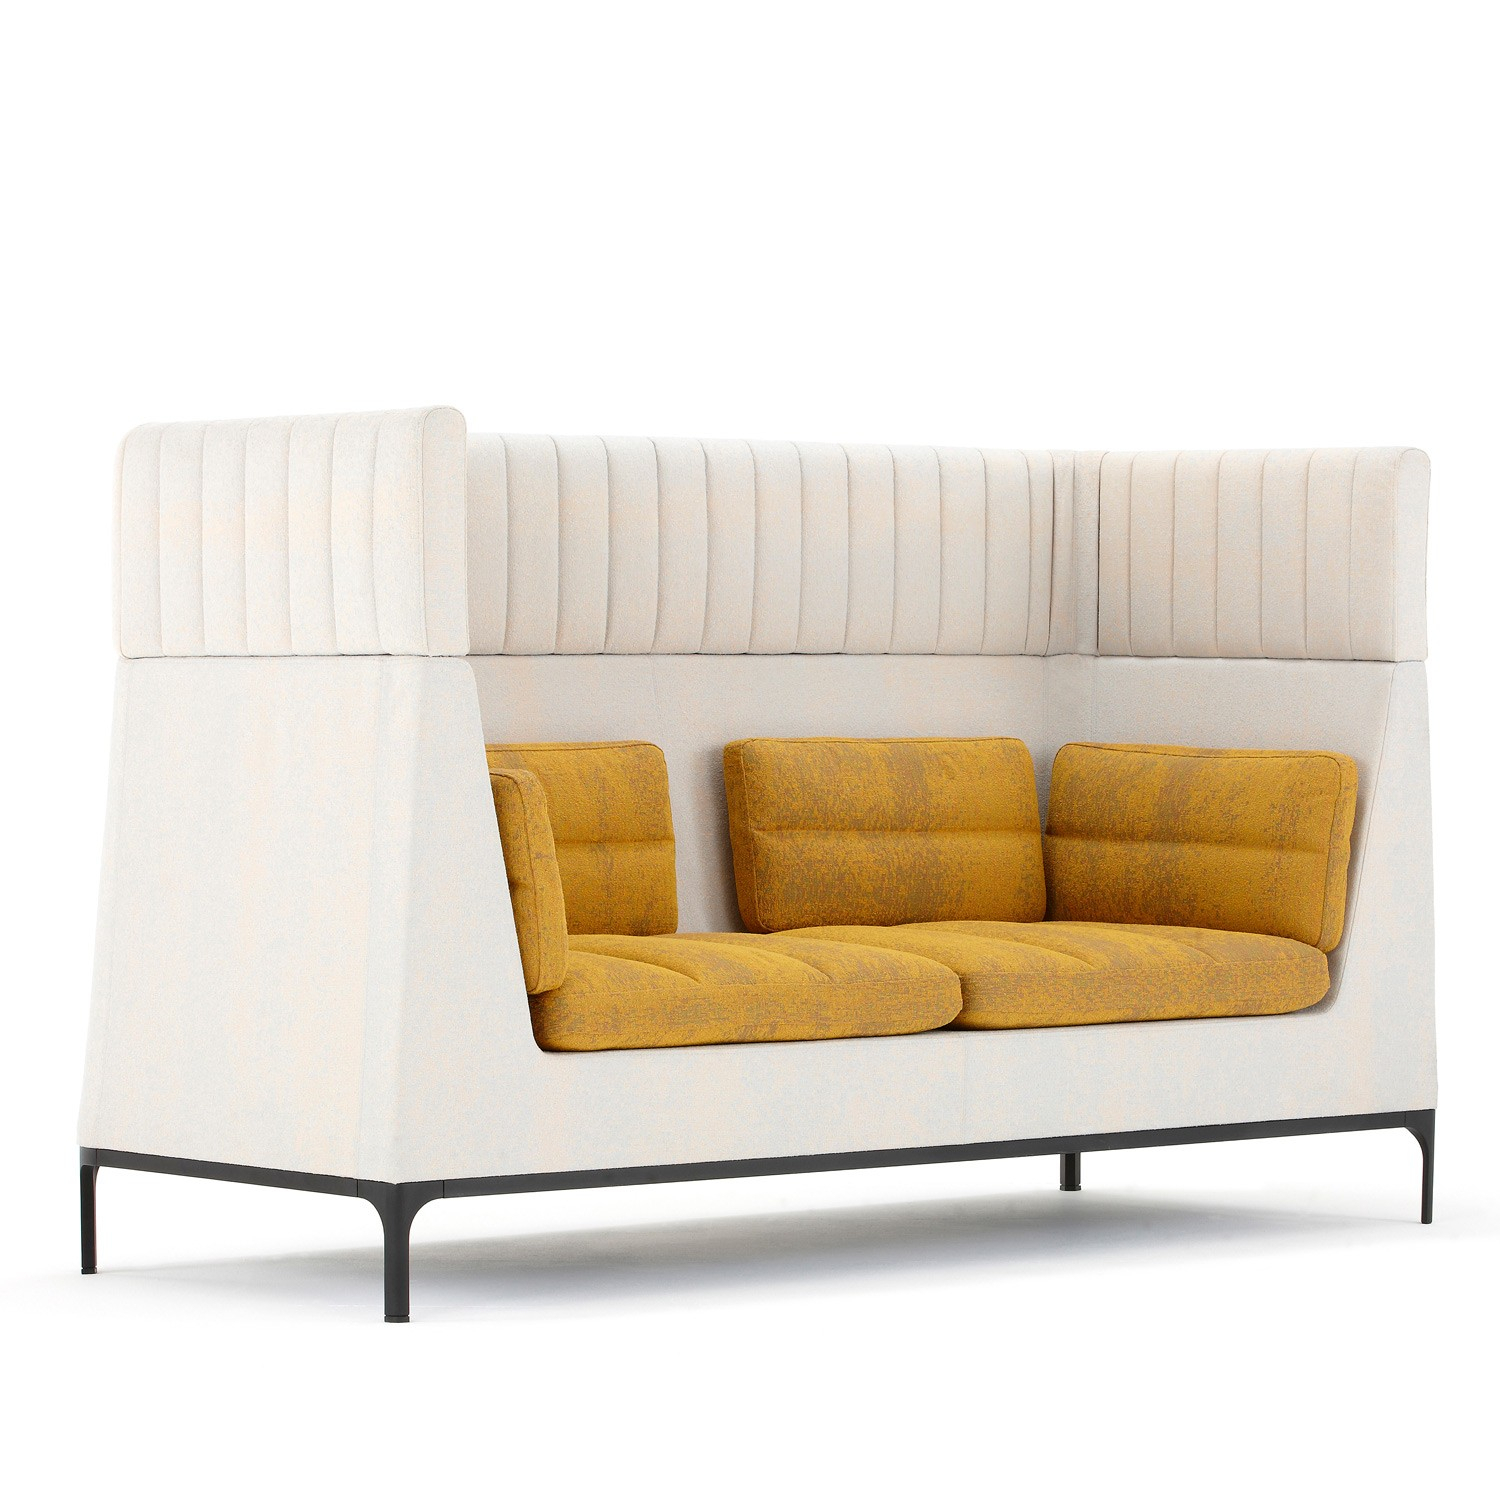 Haven High Back Sofa | Haven Acoustic Soft Seating | Apres Furniture Regarding Haven Sofa Chairs (Image 11 of 25)